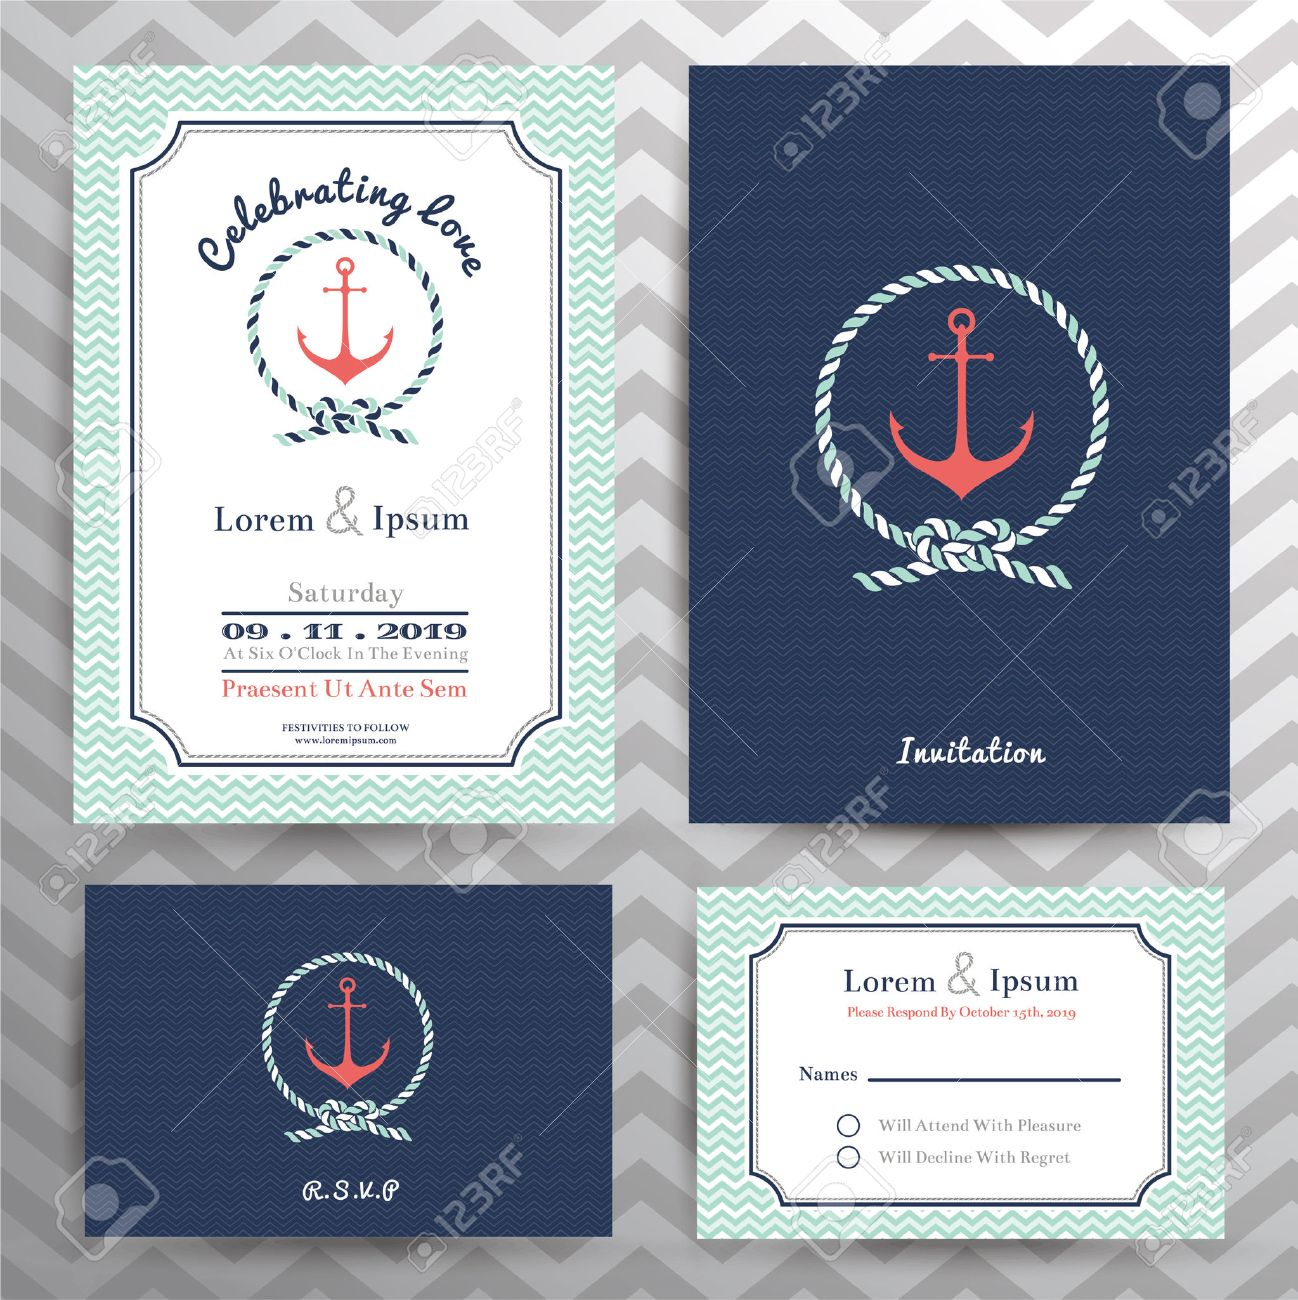 Nautical Wedding Invitation And RSVP Card Template Set In Anchor